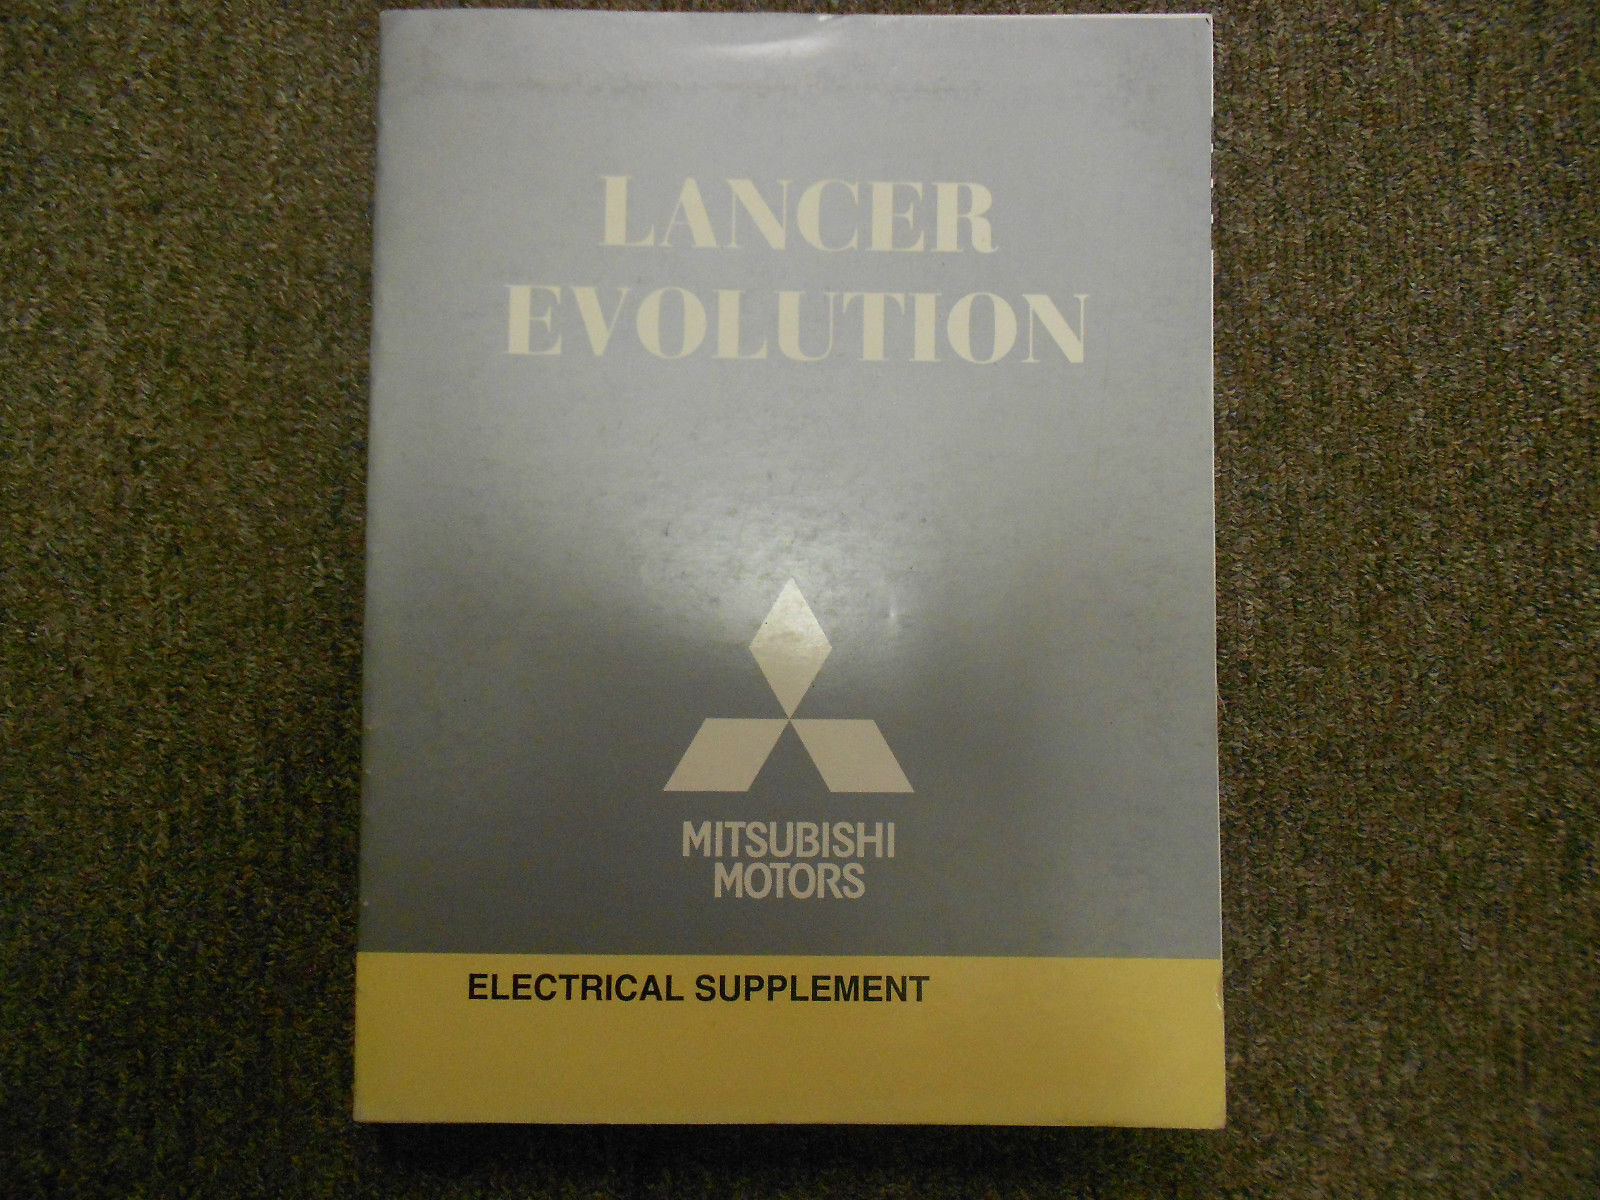 2008 MITSUBISHI Lancer Evolution Electrical Supplement Service Repair Manual OEM